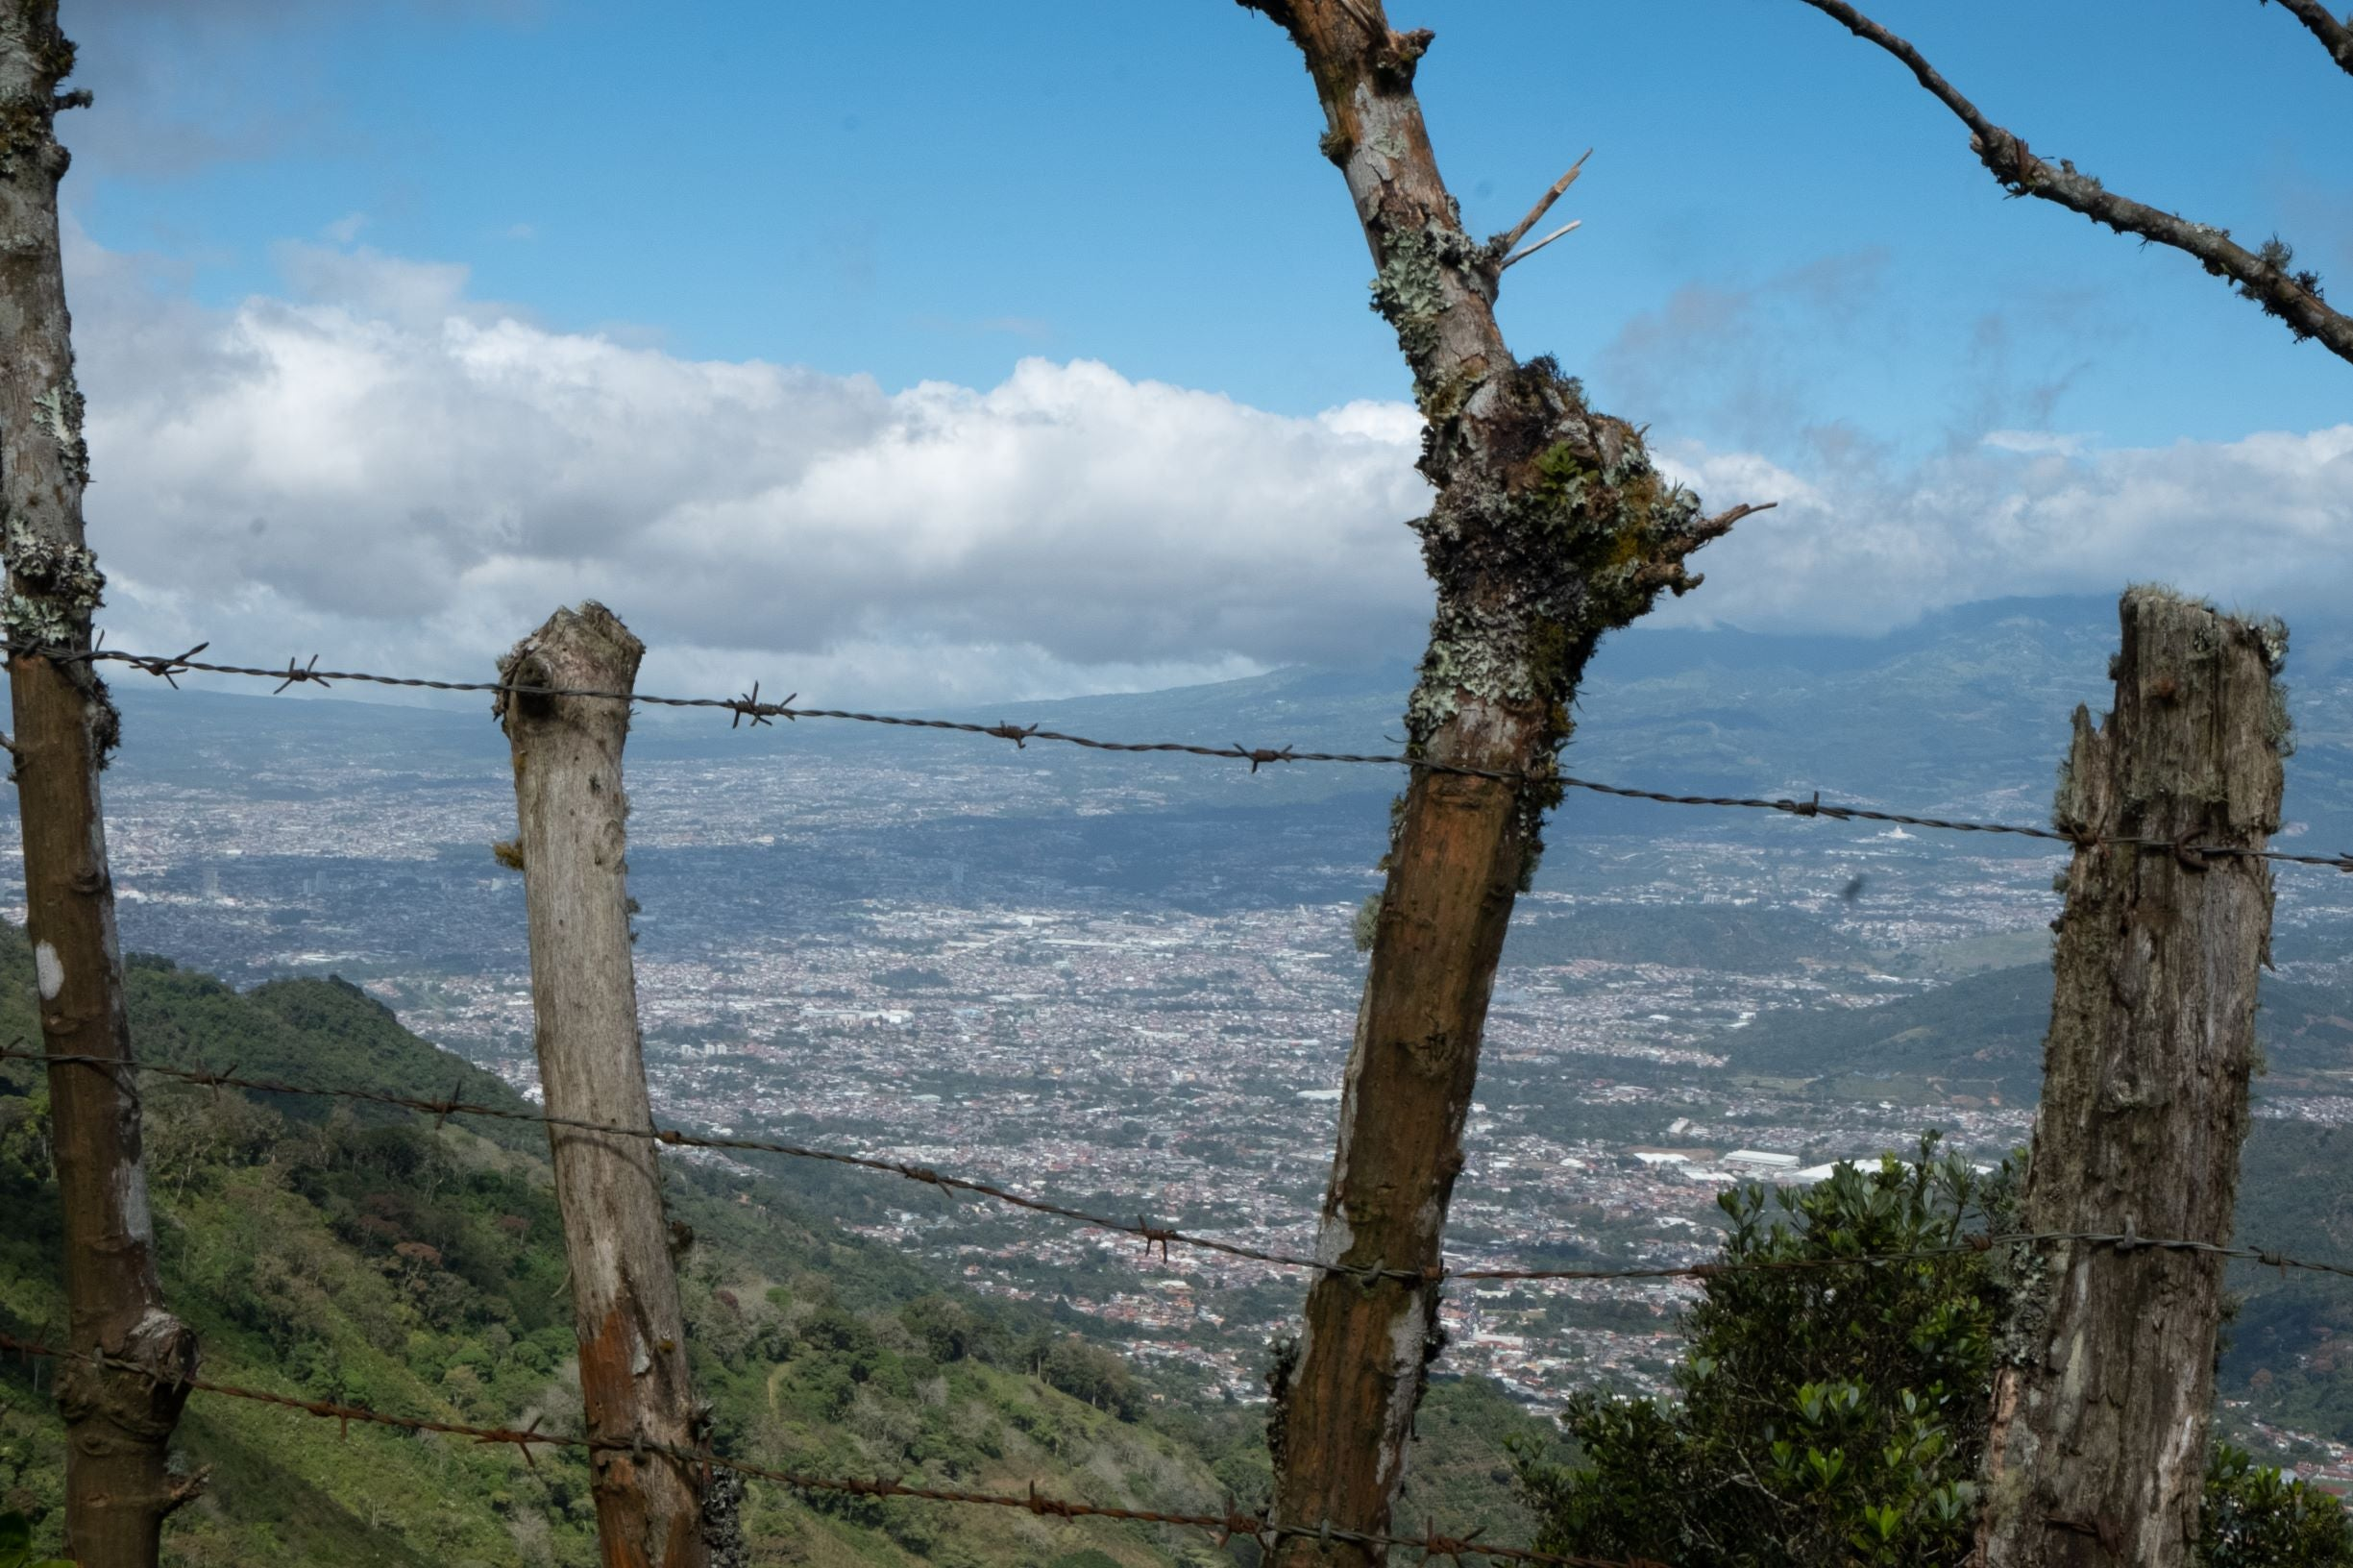 View of San Jose, Costa Rica in the Central Valley